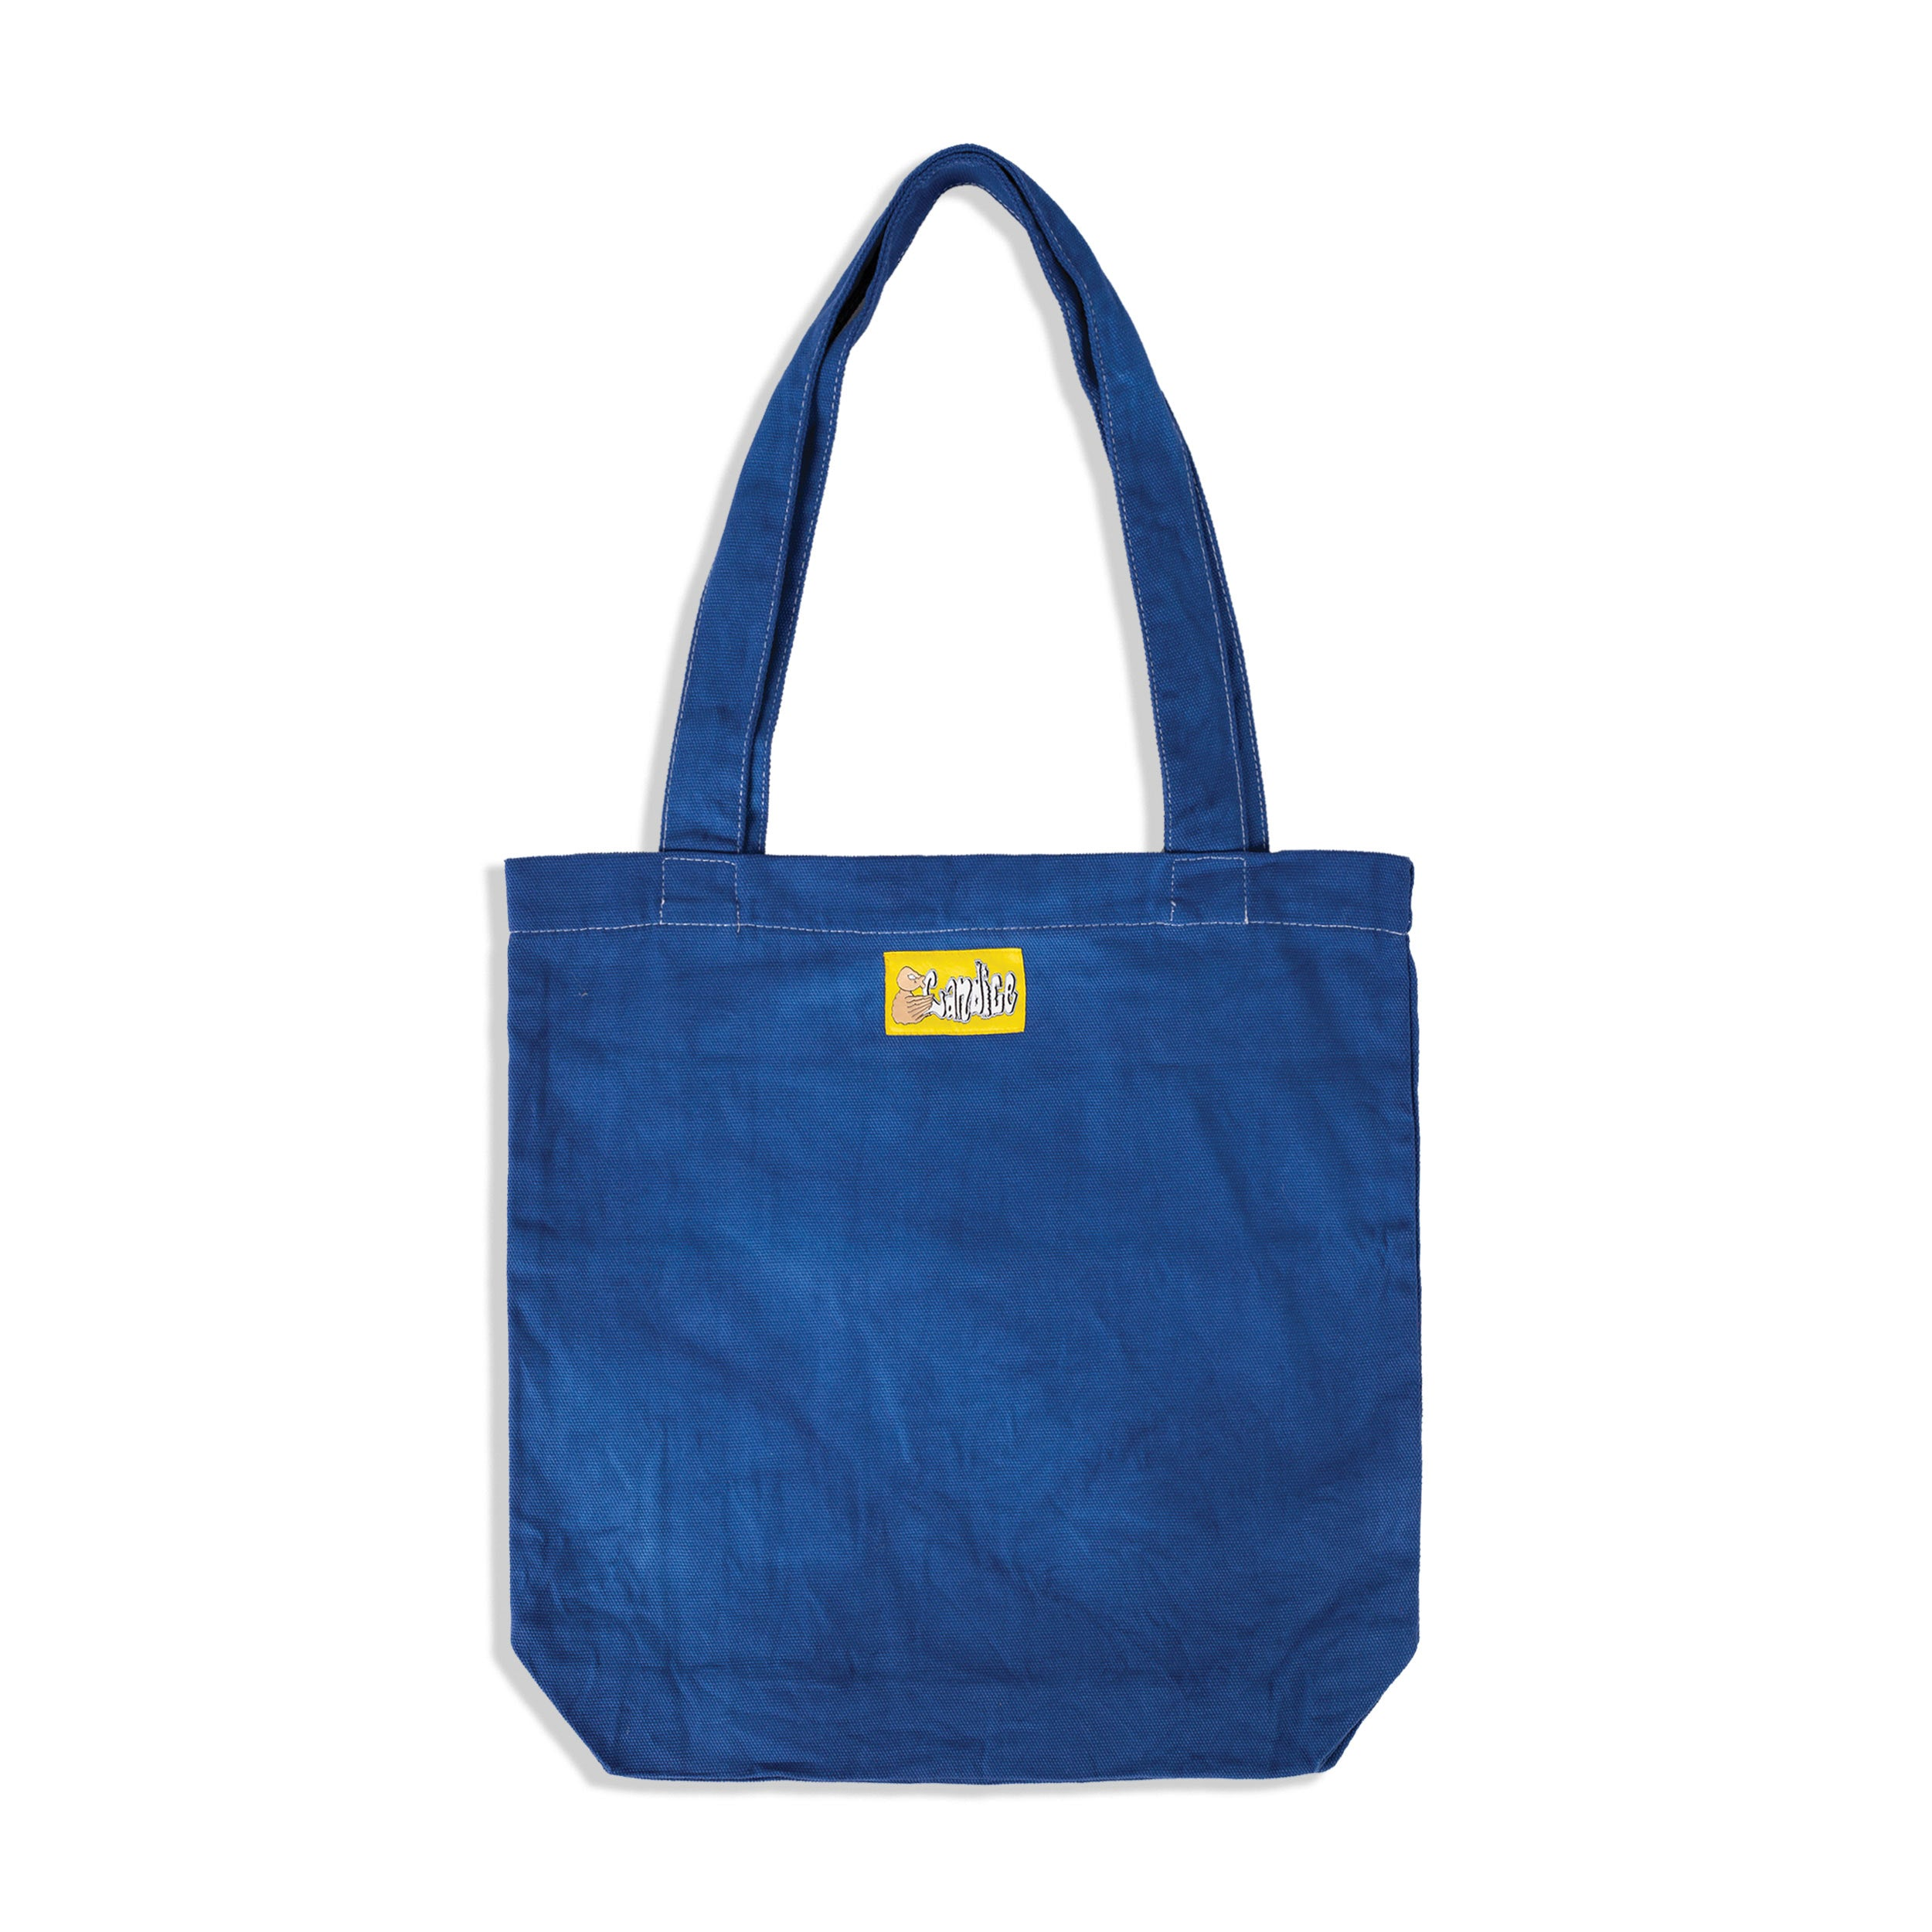 Can You See? Hand-dyed Tote Bag - Blue